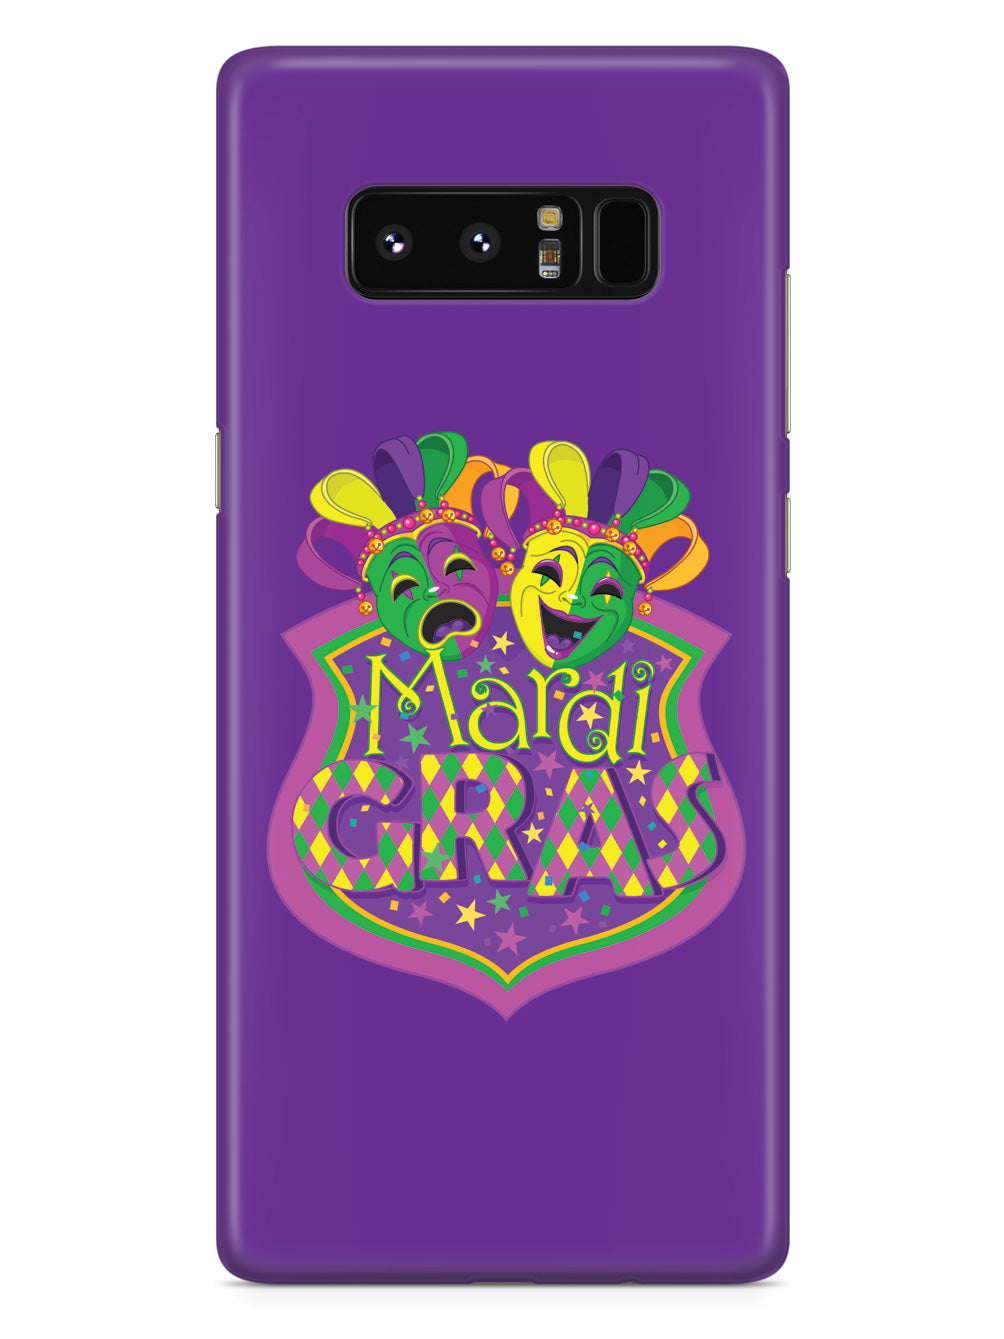 Mardi Gras Masks - Black Case